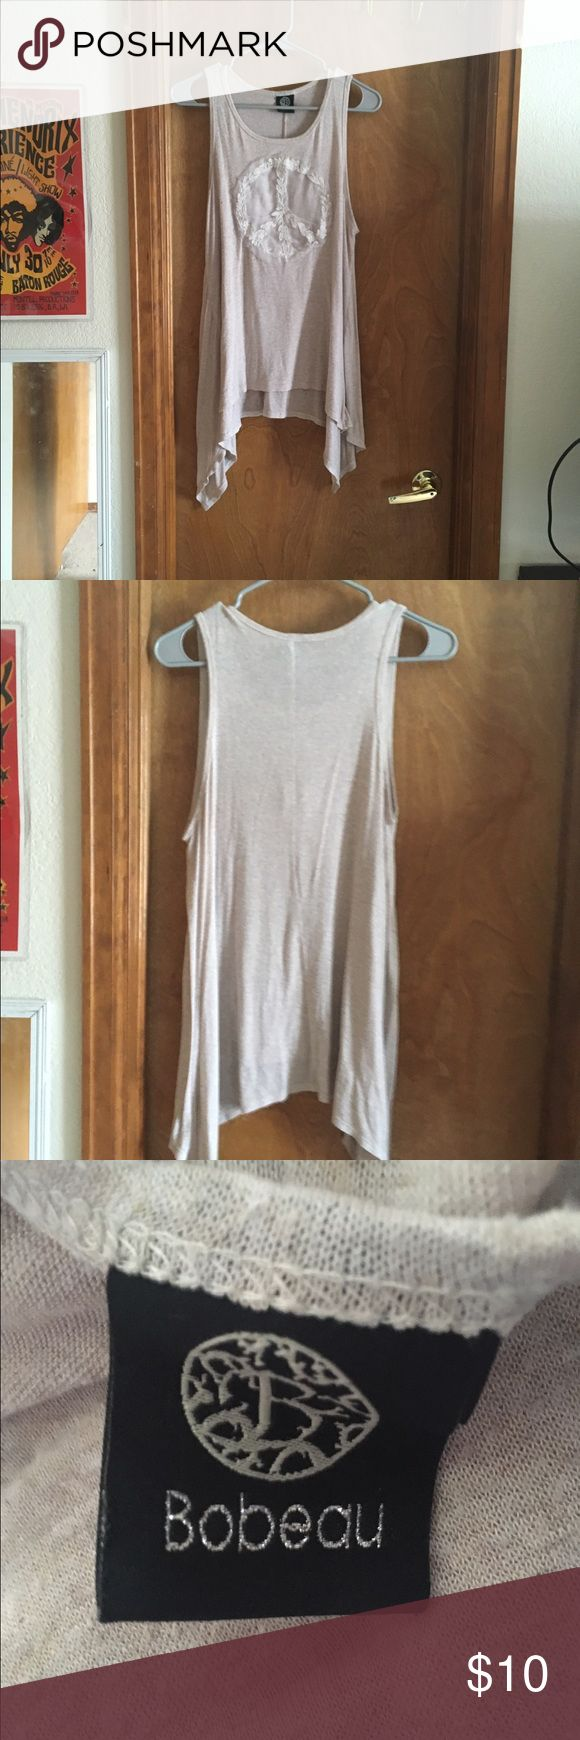 Bobeau peace long  tank top Women's Medium, long cream colored tank top. Peace sign on front. It is a loose tank top that is perfect for festivals/concerts in summer or great with a sweater in the fall. bobeau Tops Tank Tops